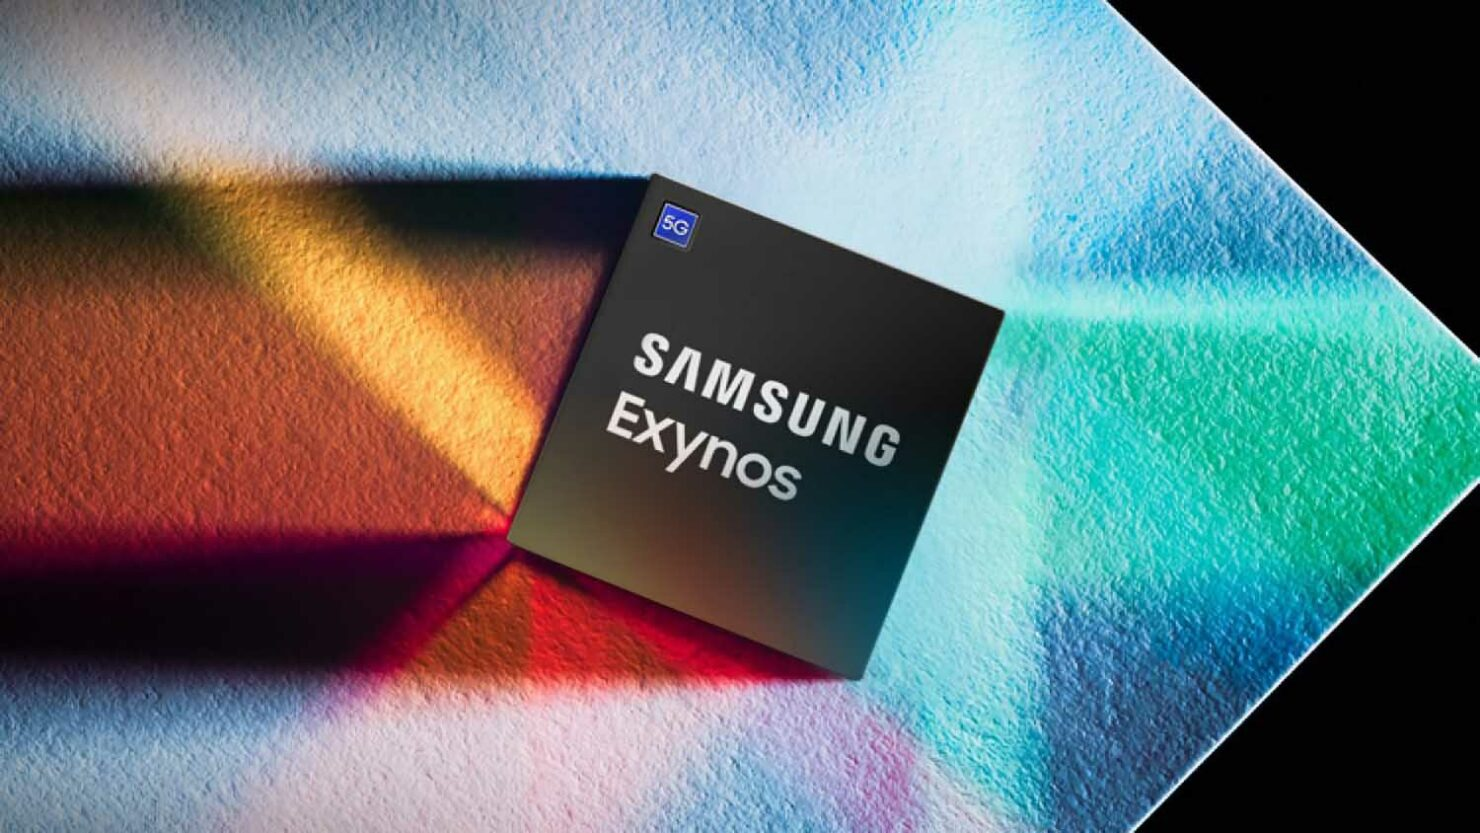 Galaxy S22 Variants With Exynos 2200 SoC & AMD GPU May Only Launch in Select Markets Due to Yield Issues